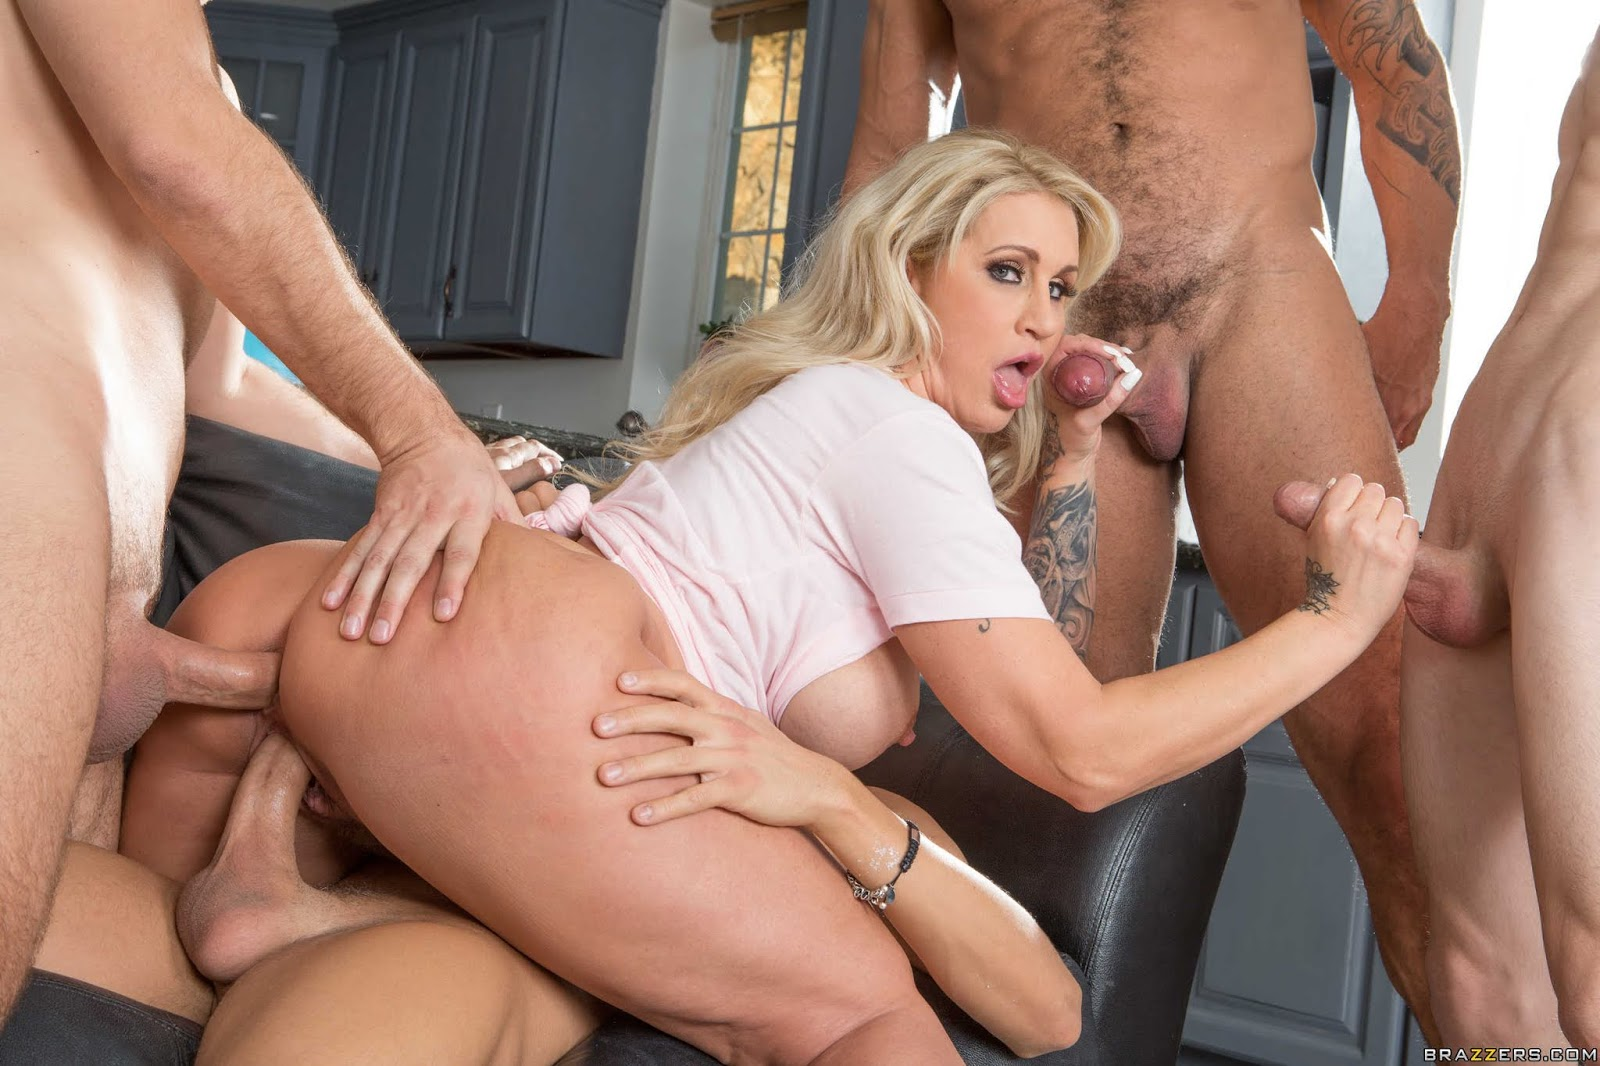 Milf striptease fuck dominant milf gets a creampie after anal sex